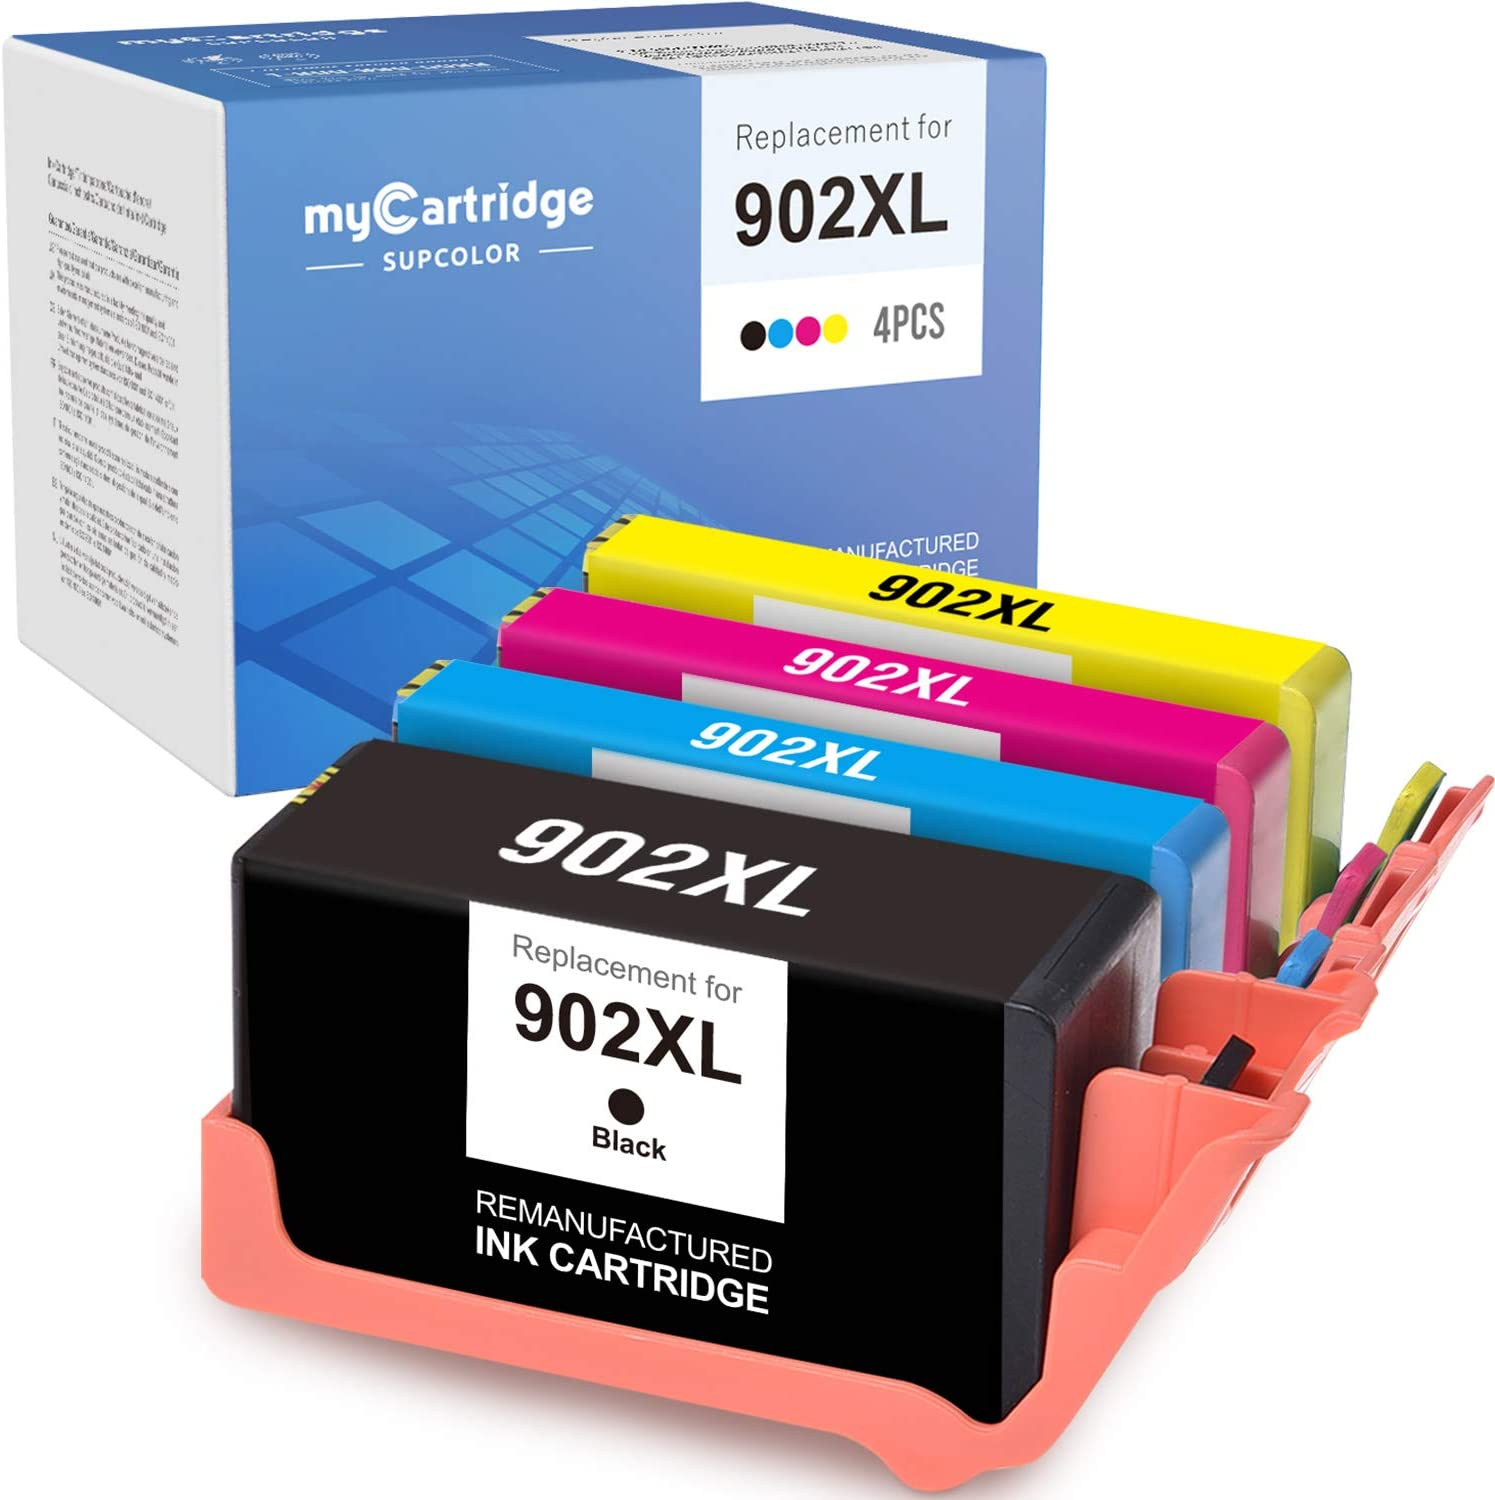 myCartridge SUPCOLOR Remanufactured Ink Cartridge Replacement for HP 902XL 902 XL to use with OfficeJet Pro 6962 6958 6978 6968 6960 6954 (High Yield 4-Pack)